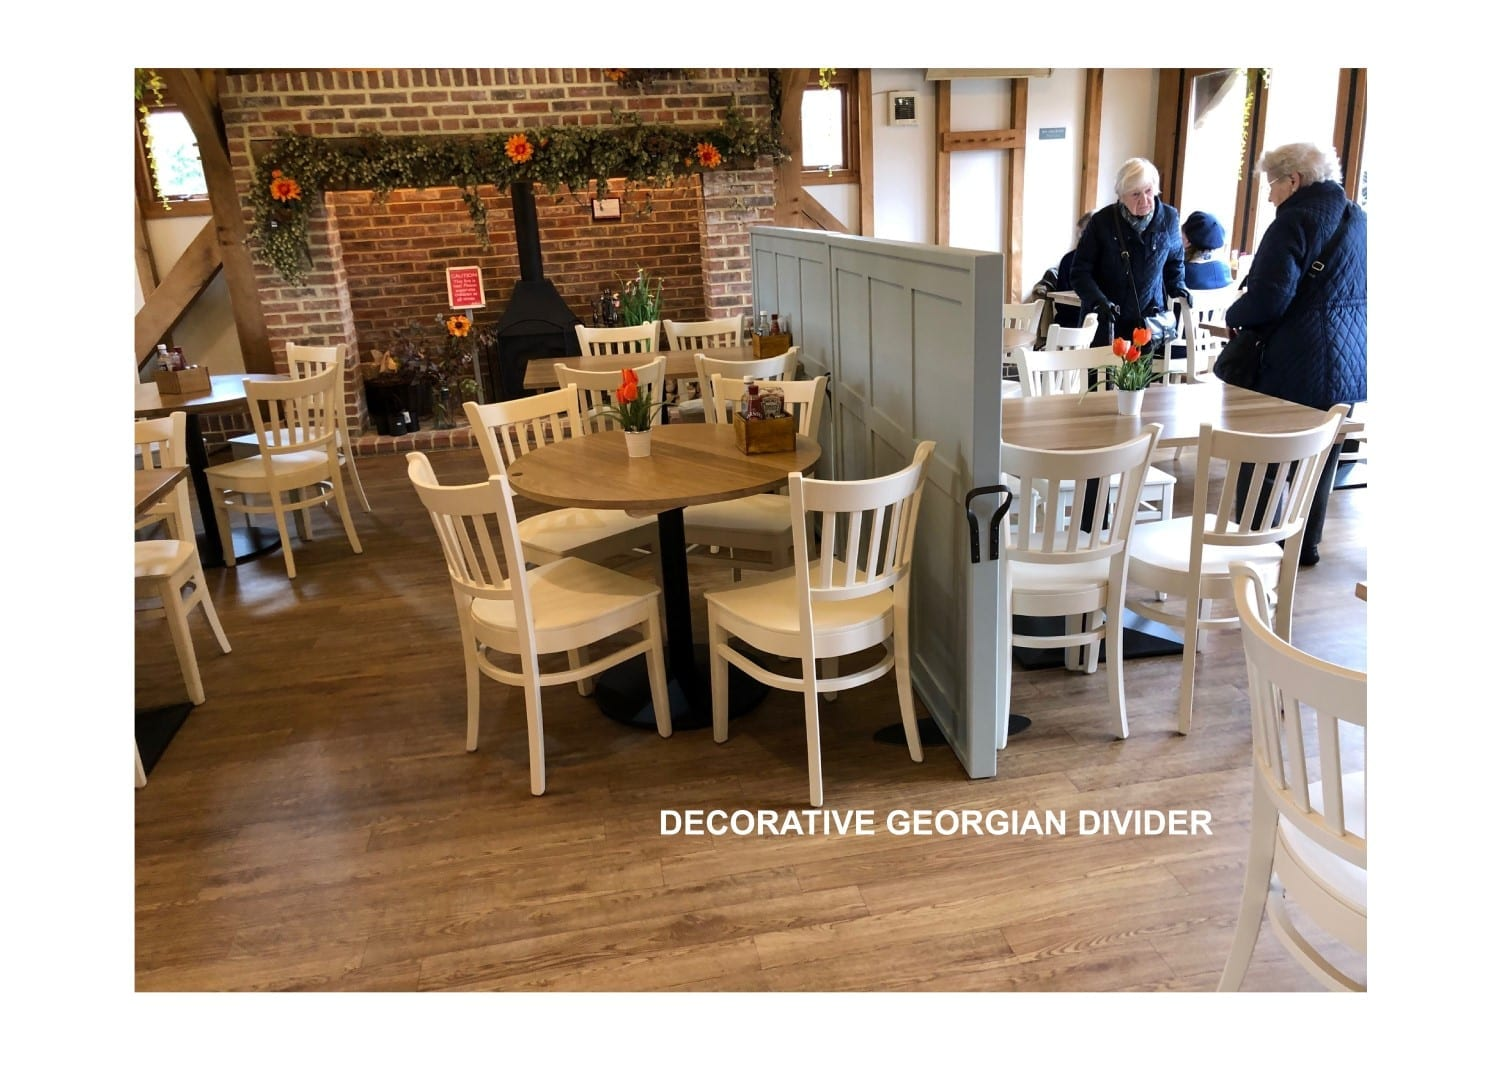 decorative georgian divider